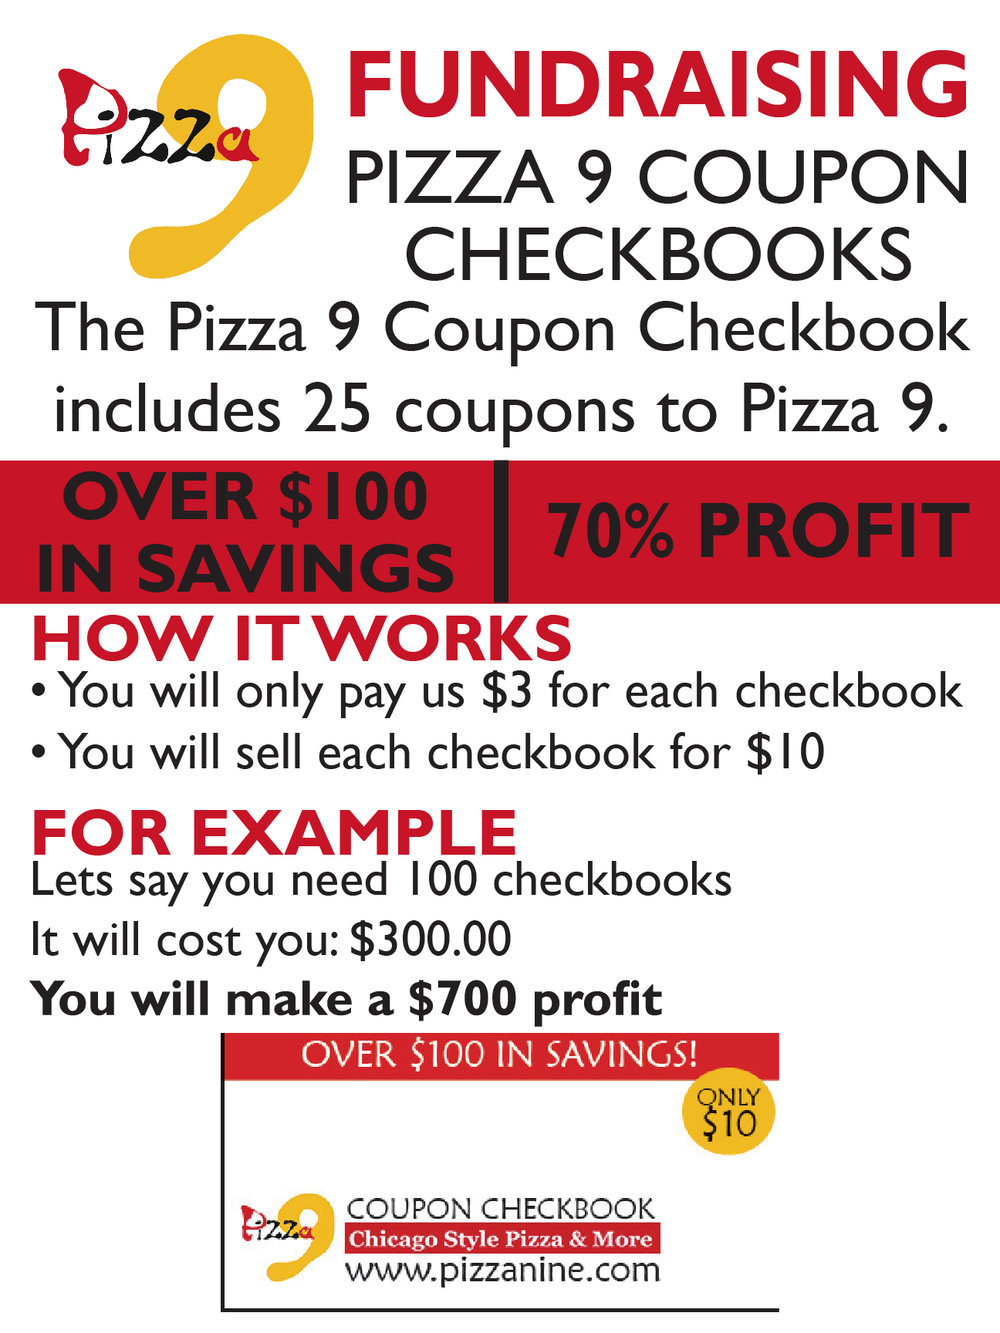 Coupon Checkbooks-100.jpg